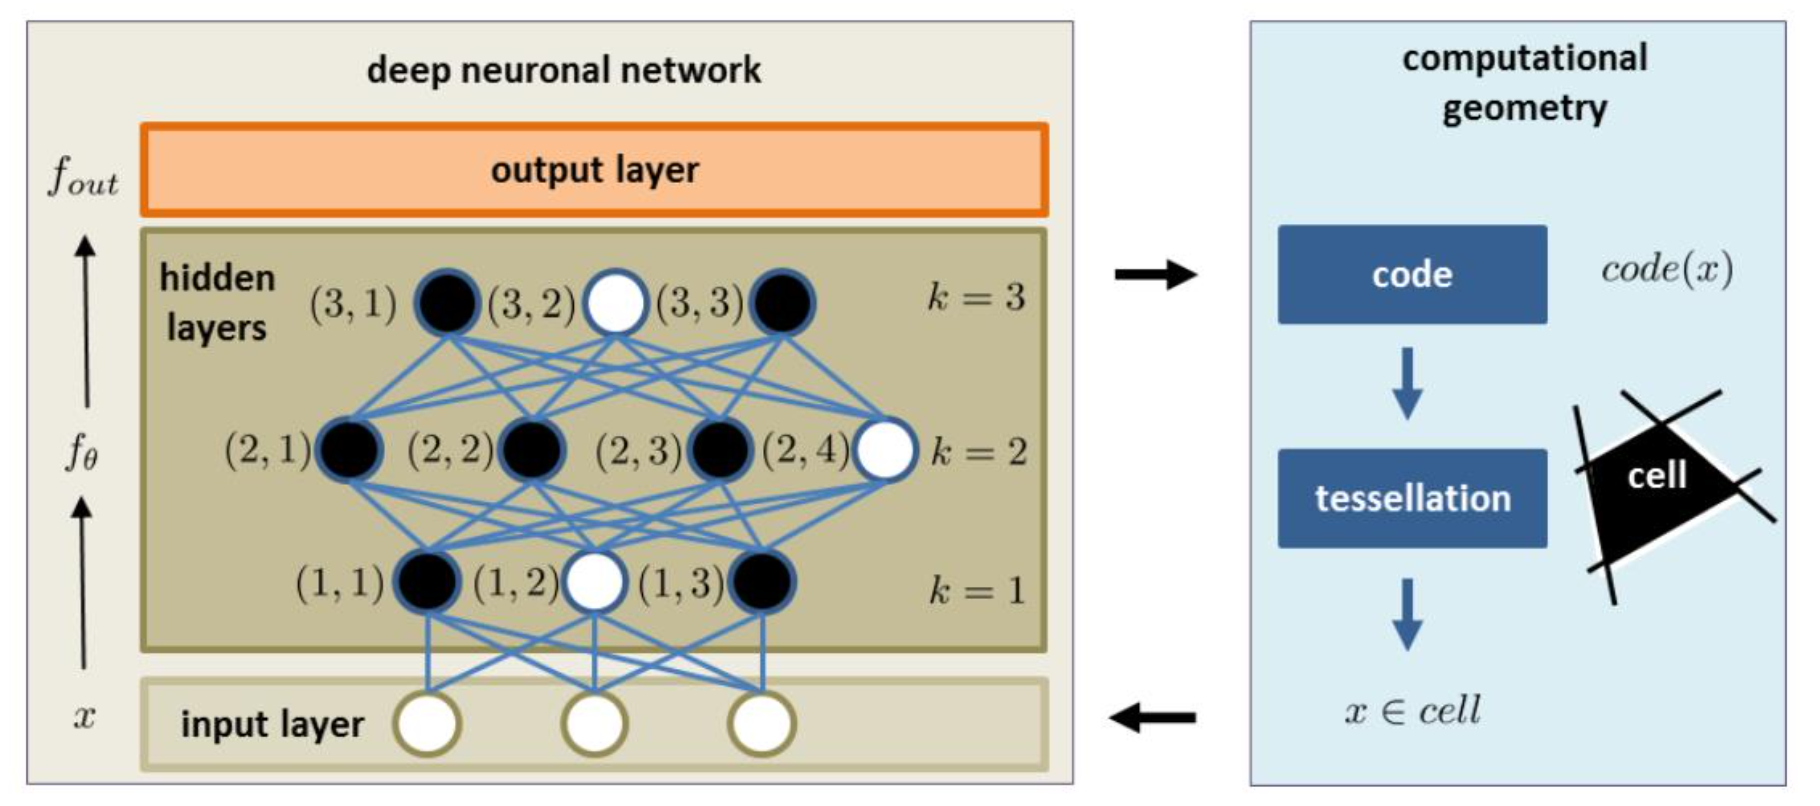 Polyhedral bodies of ReLU networks